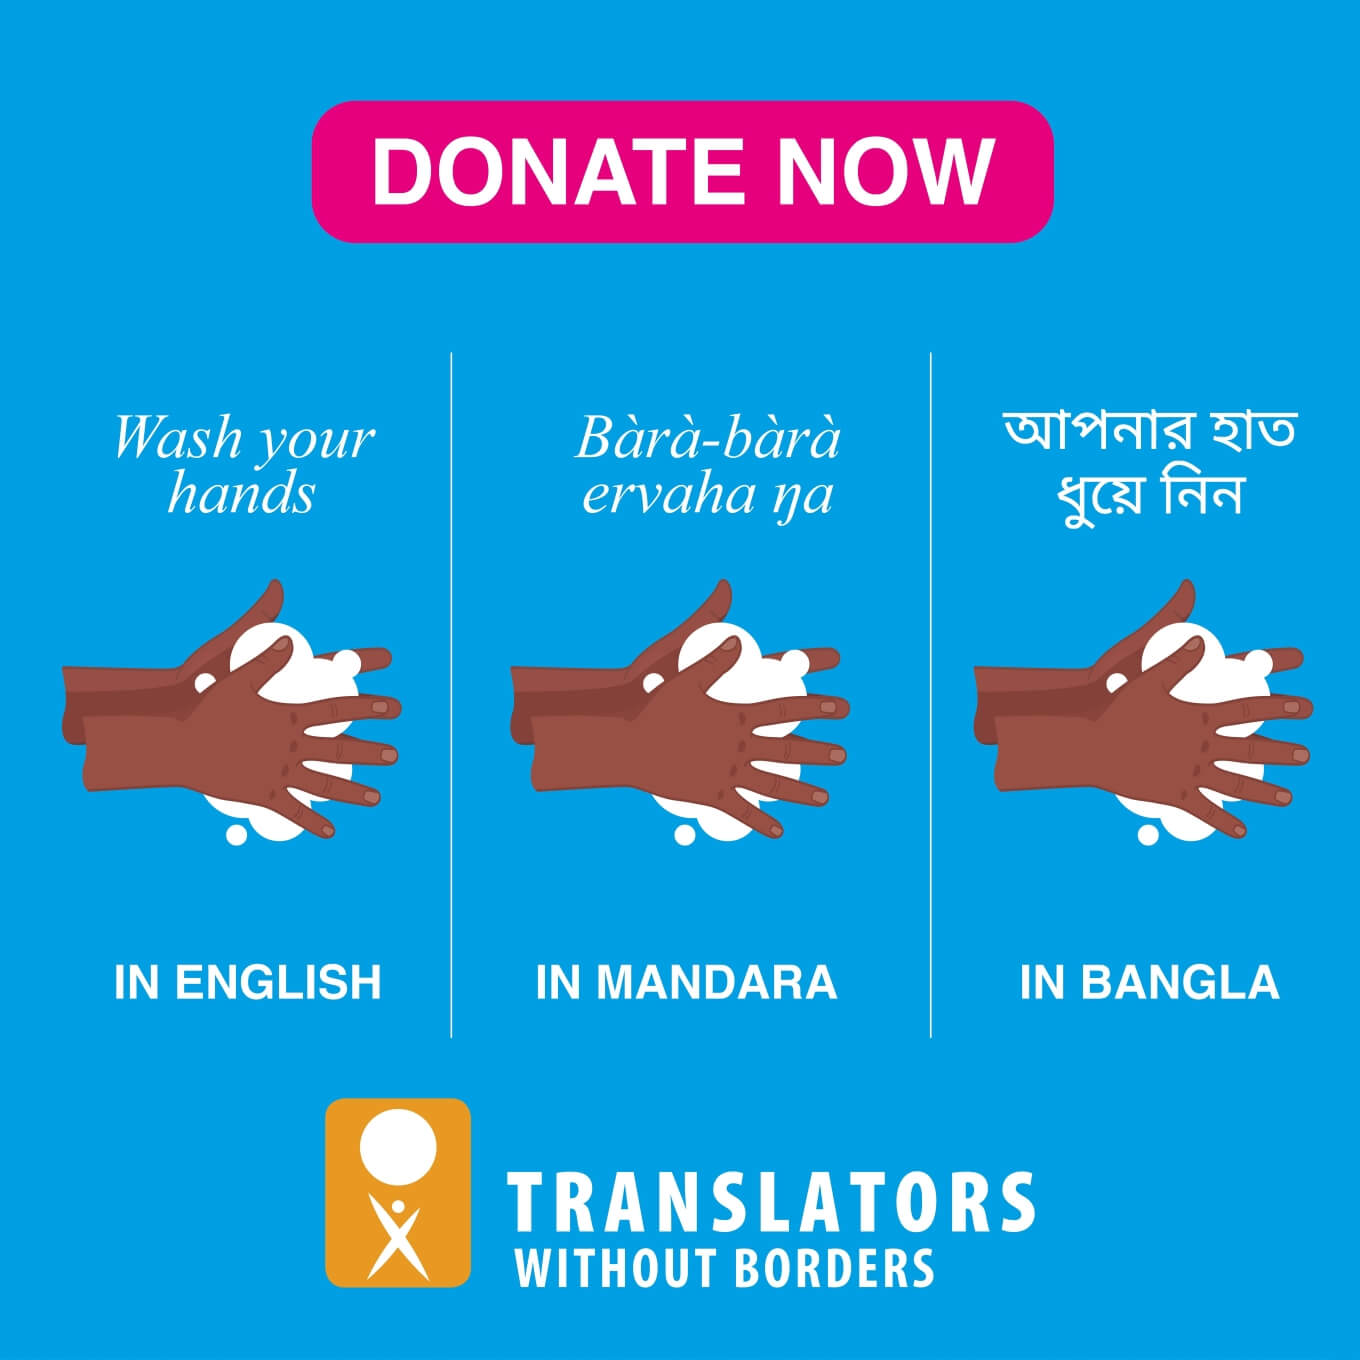 Translators Without Borders - donate now